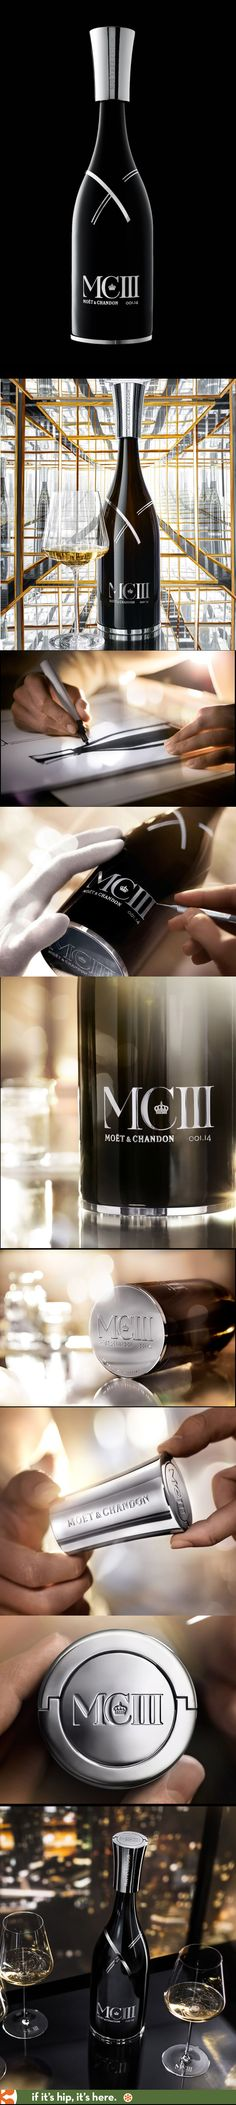 Moet & Chandon MCIII with its stunning hand-etched bottle and metal top.